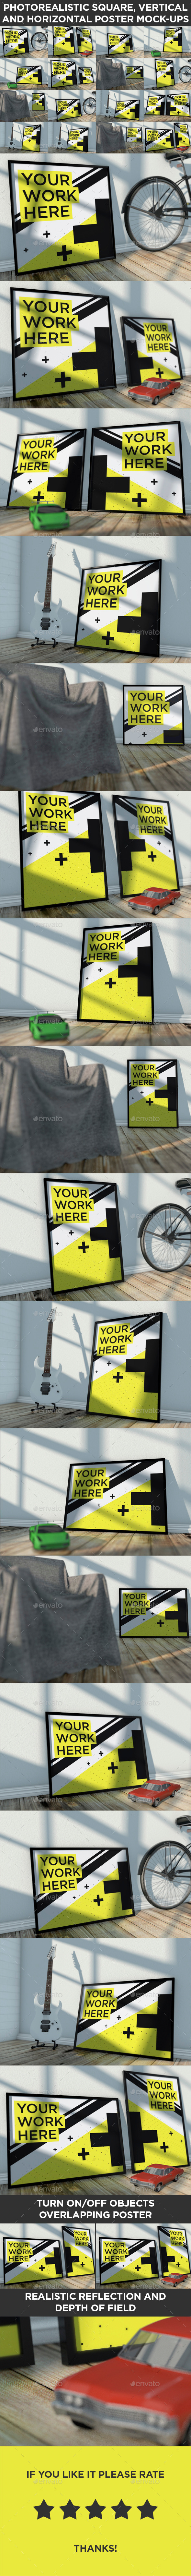 GraphicRiver 16 Realistic Poster Mock-Ups Vol.1 8939334